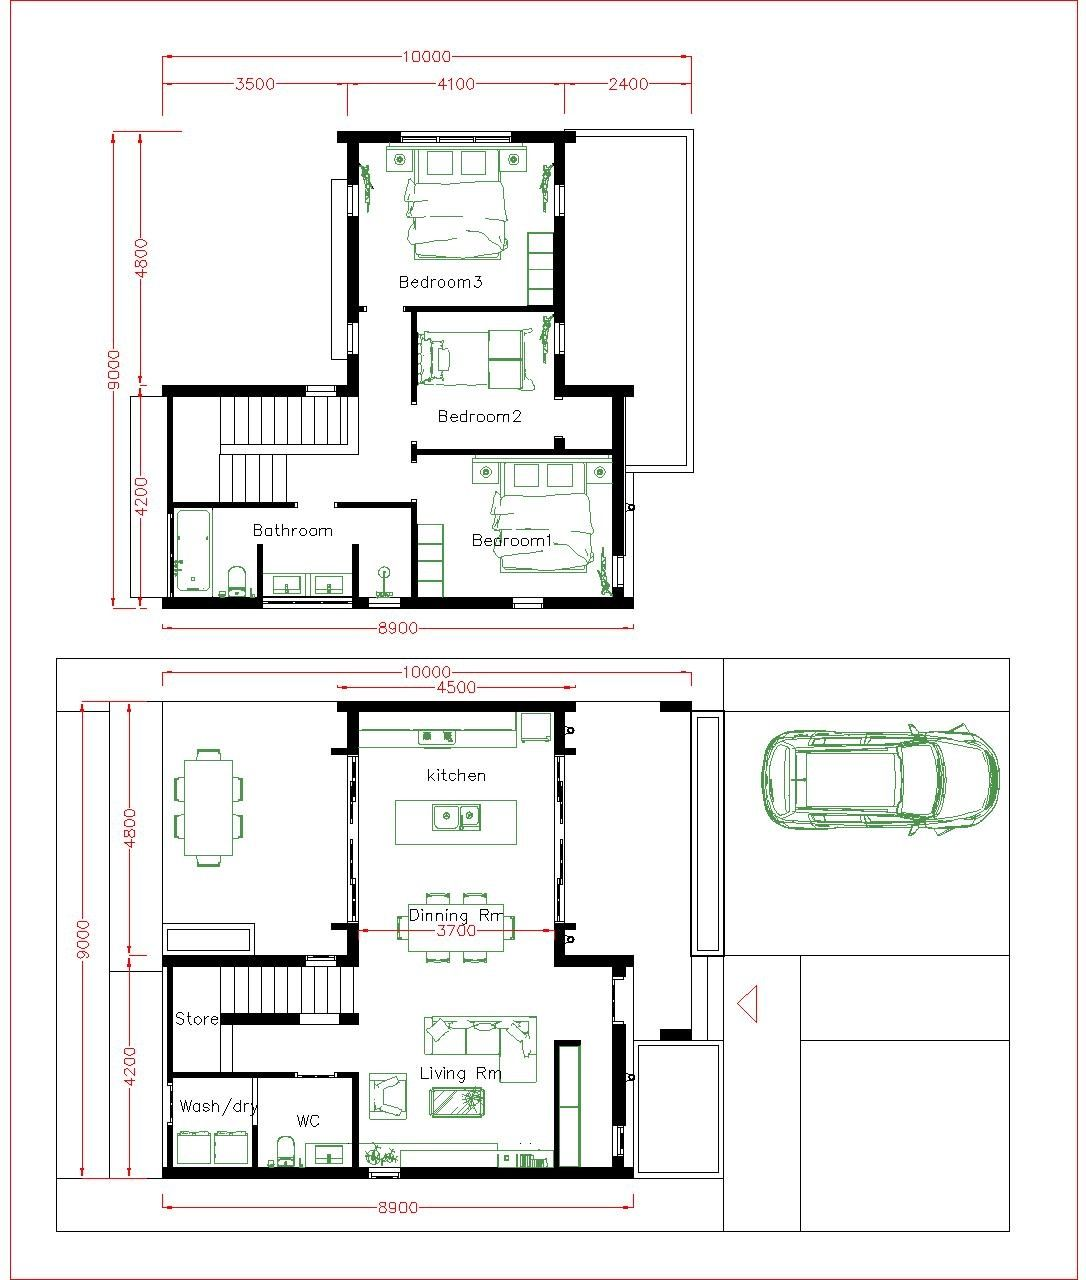 3 Bedrooms House Plans 9x10m Sam House Plans House Plans Bedroom House Plans House Layout Plans